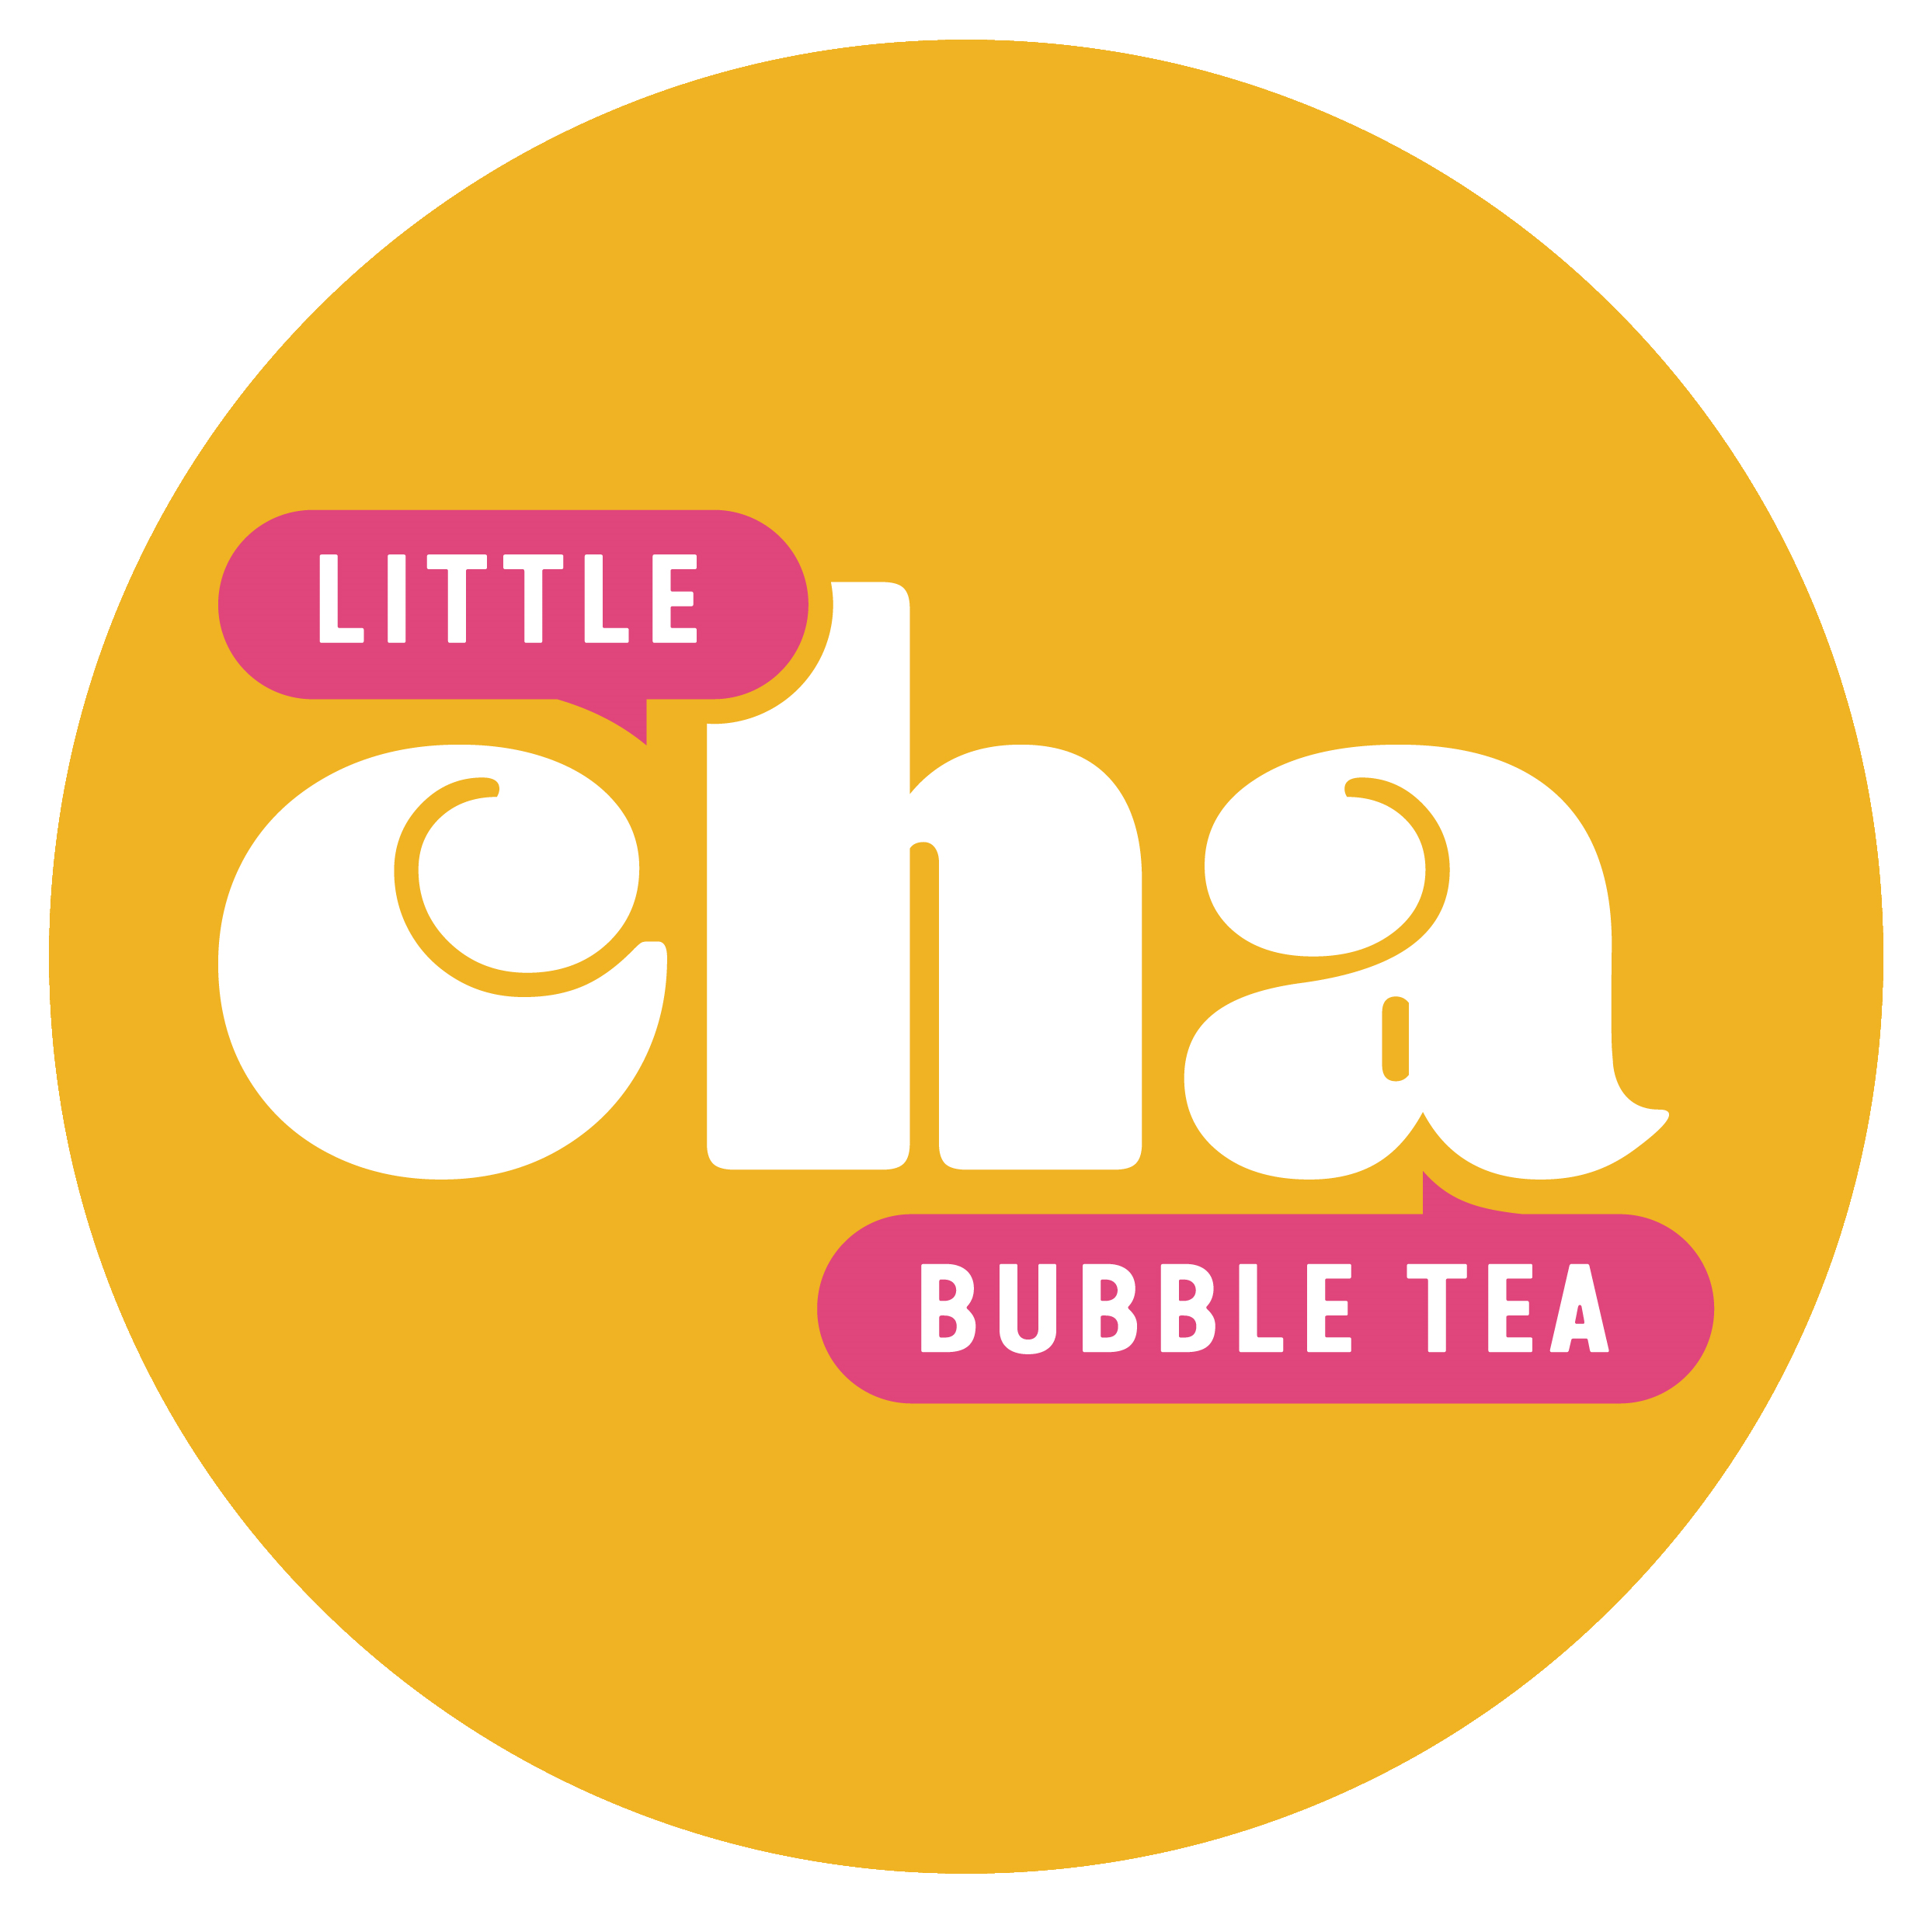 The Little Cha PNG cropped-1